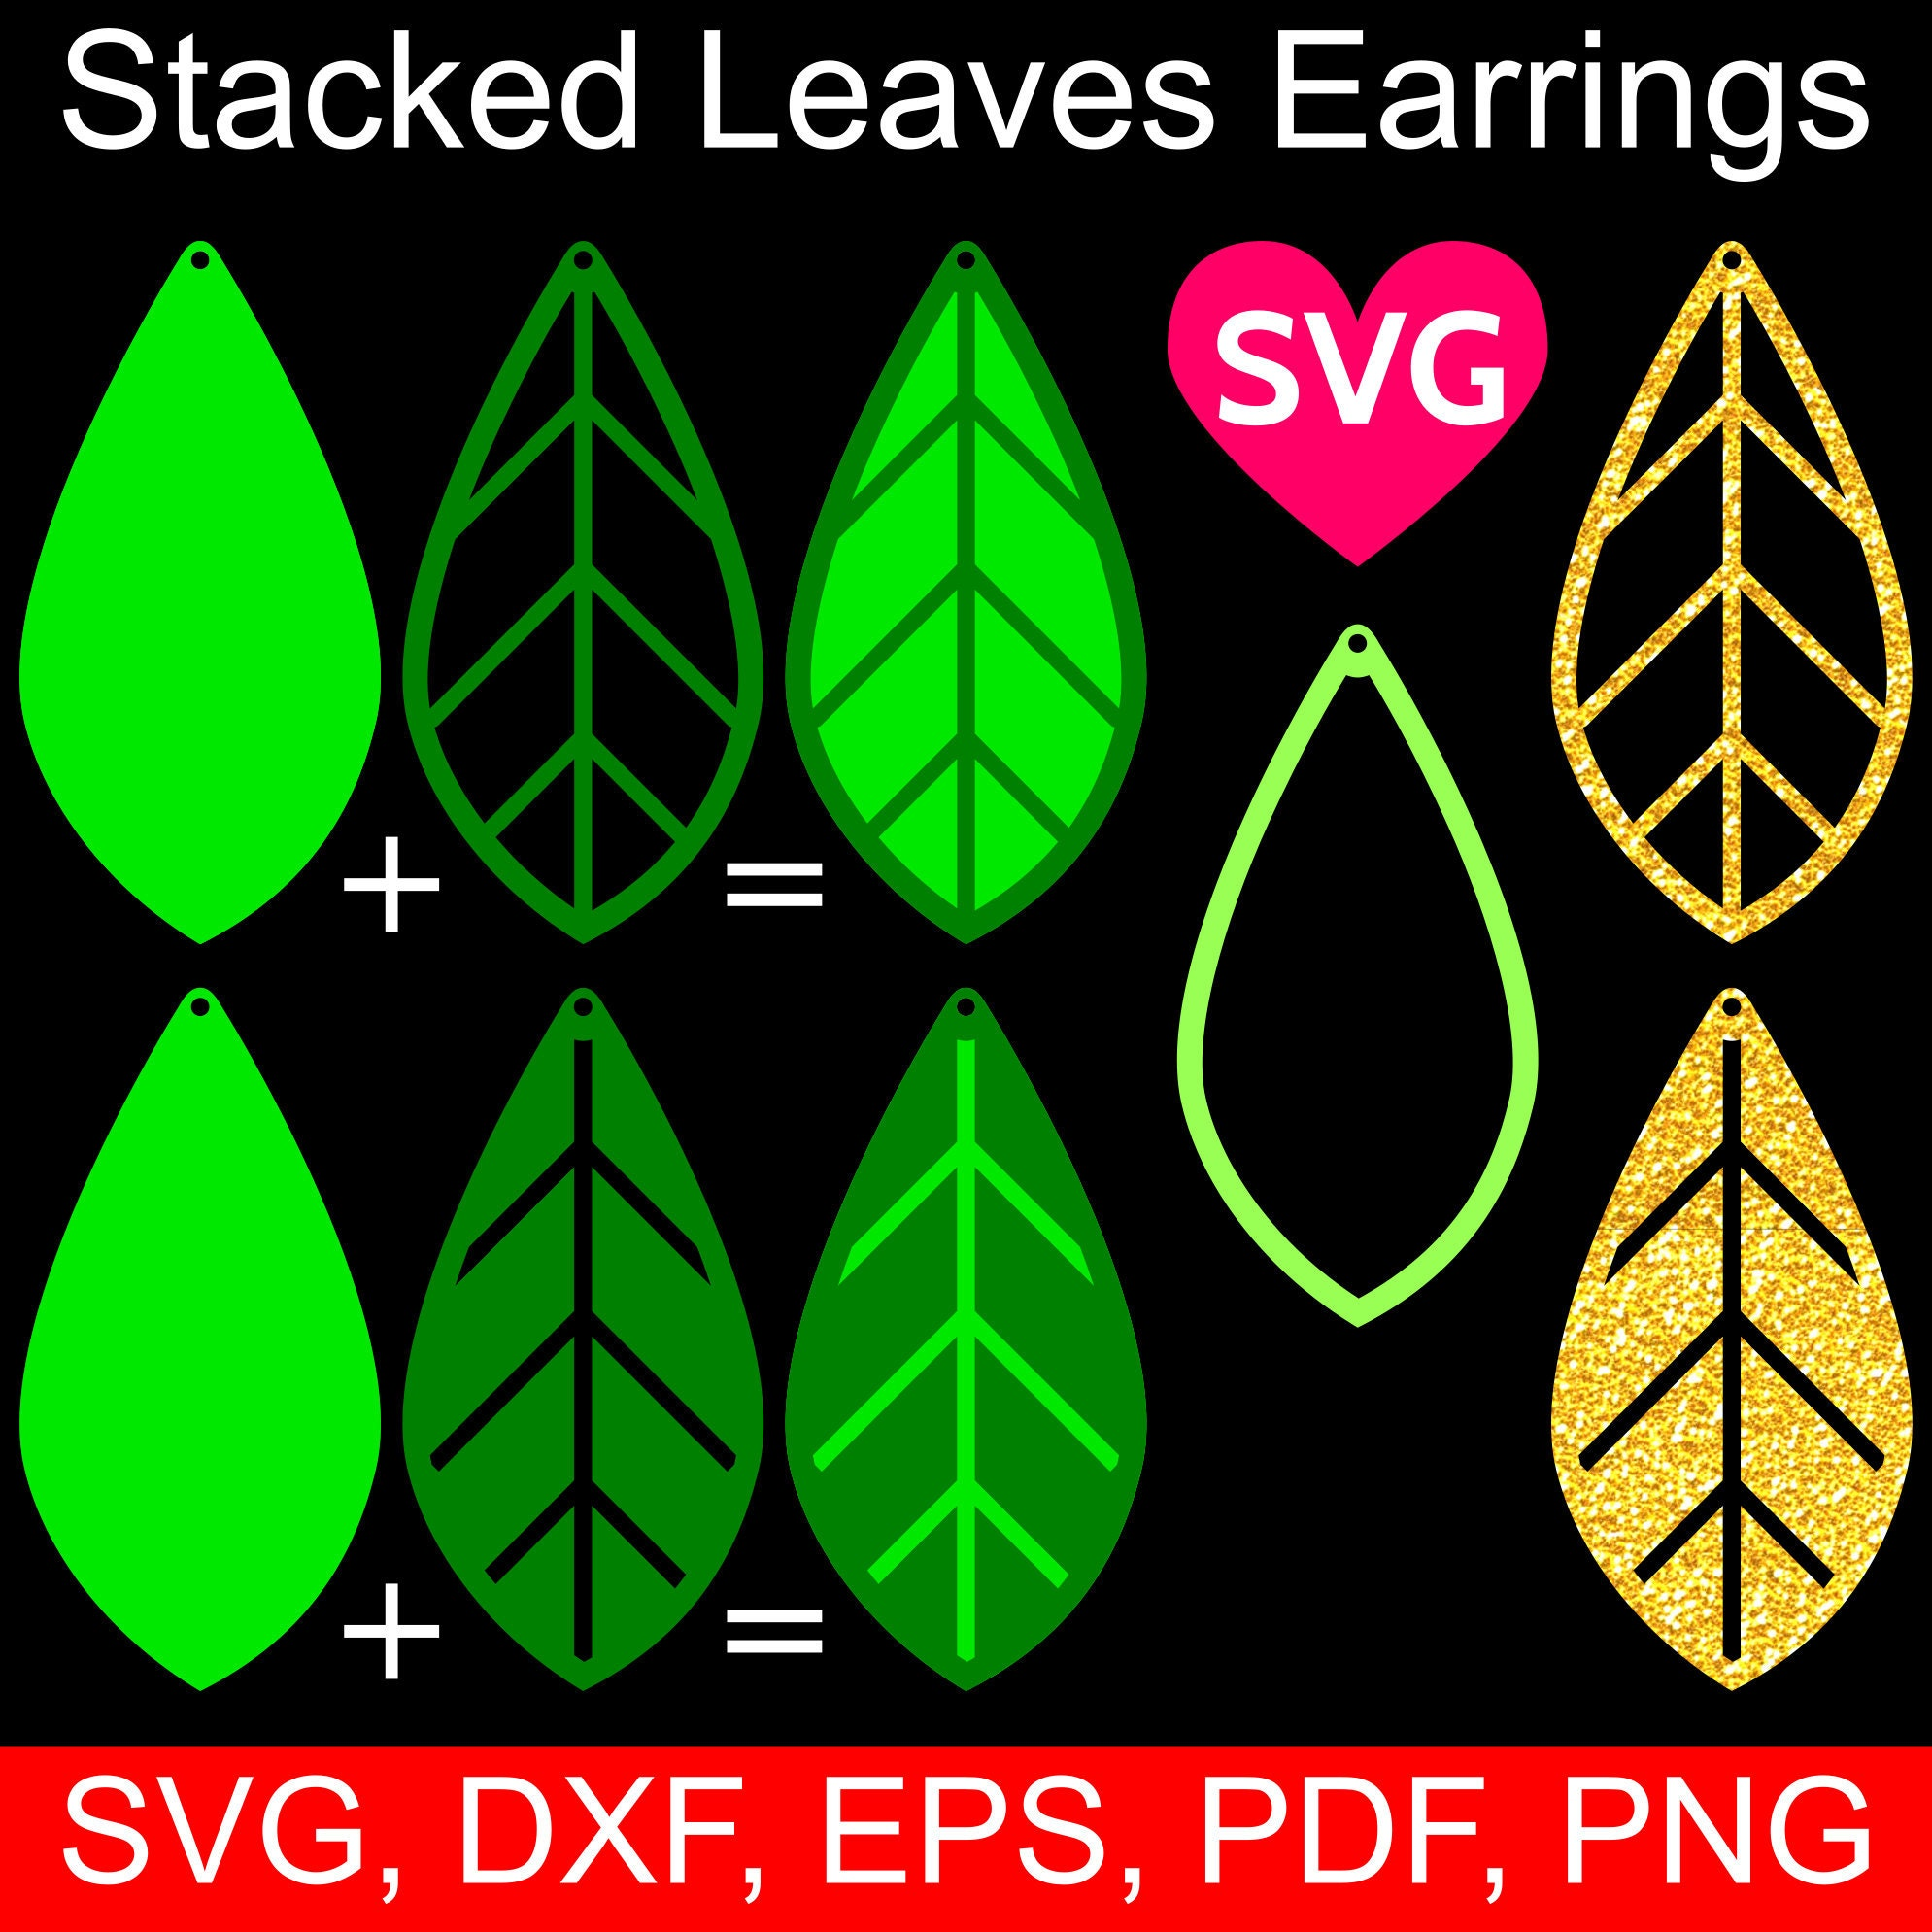 Leaf earrings SVG